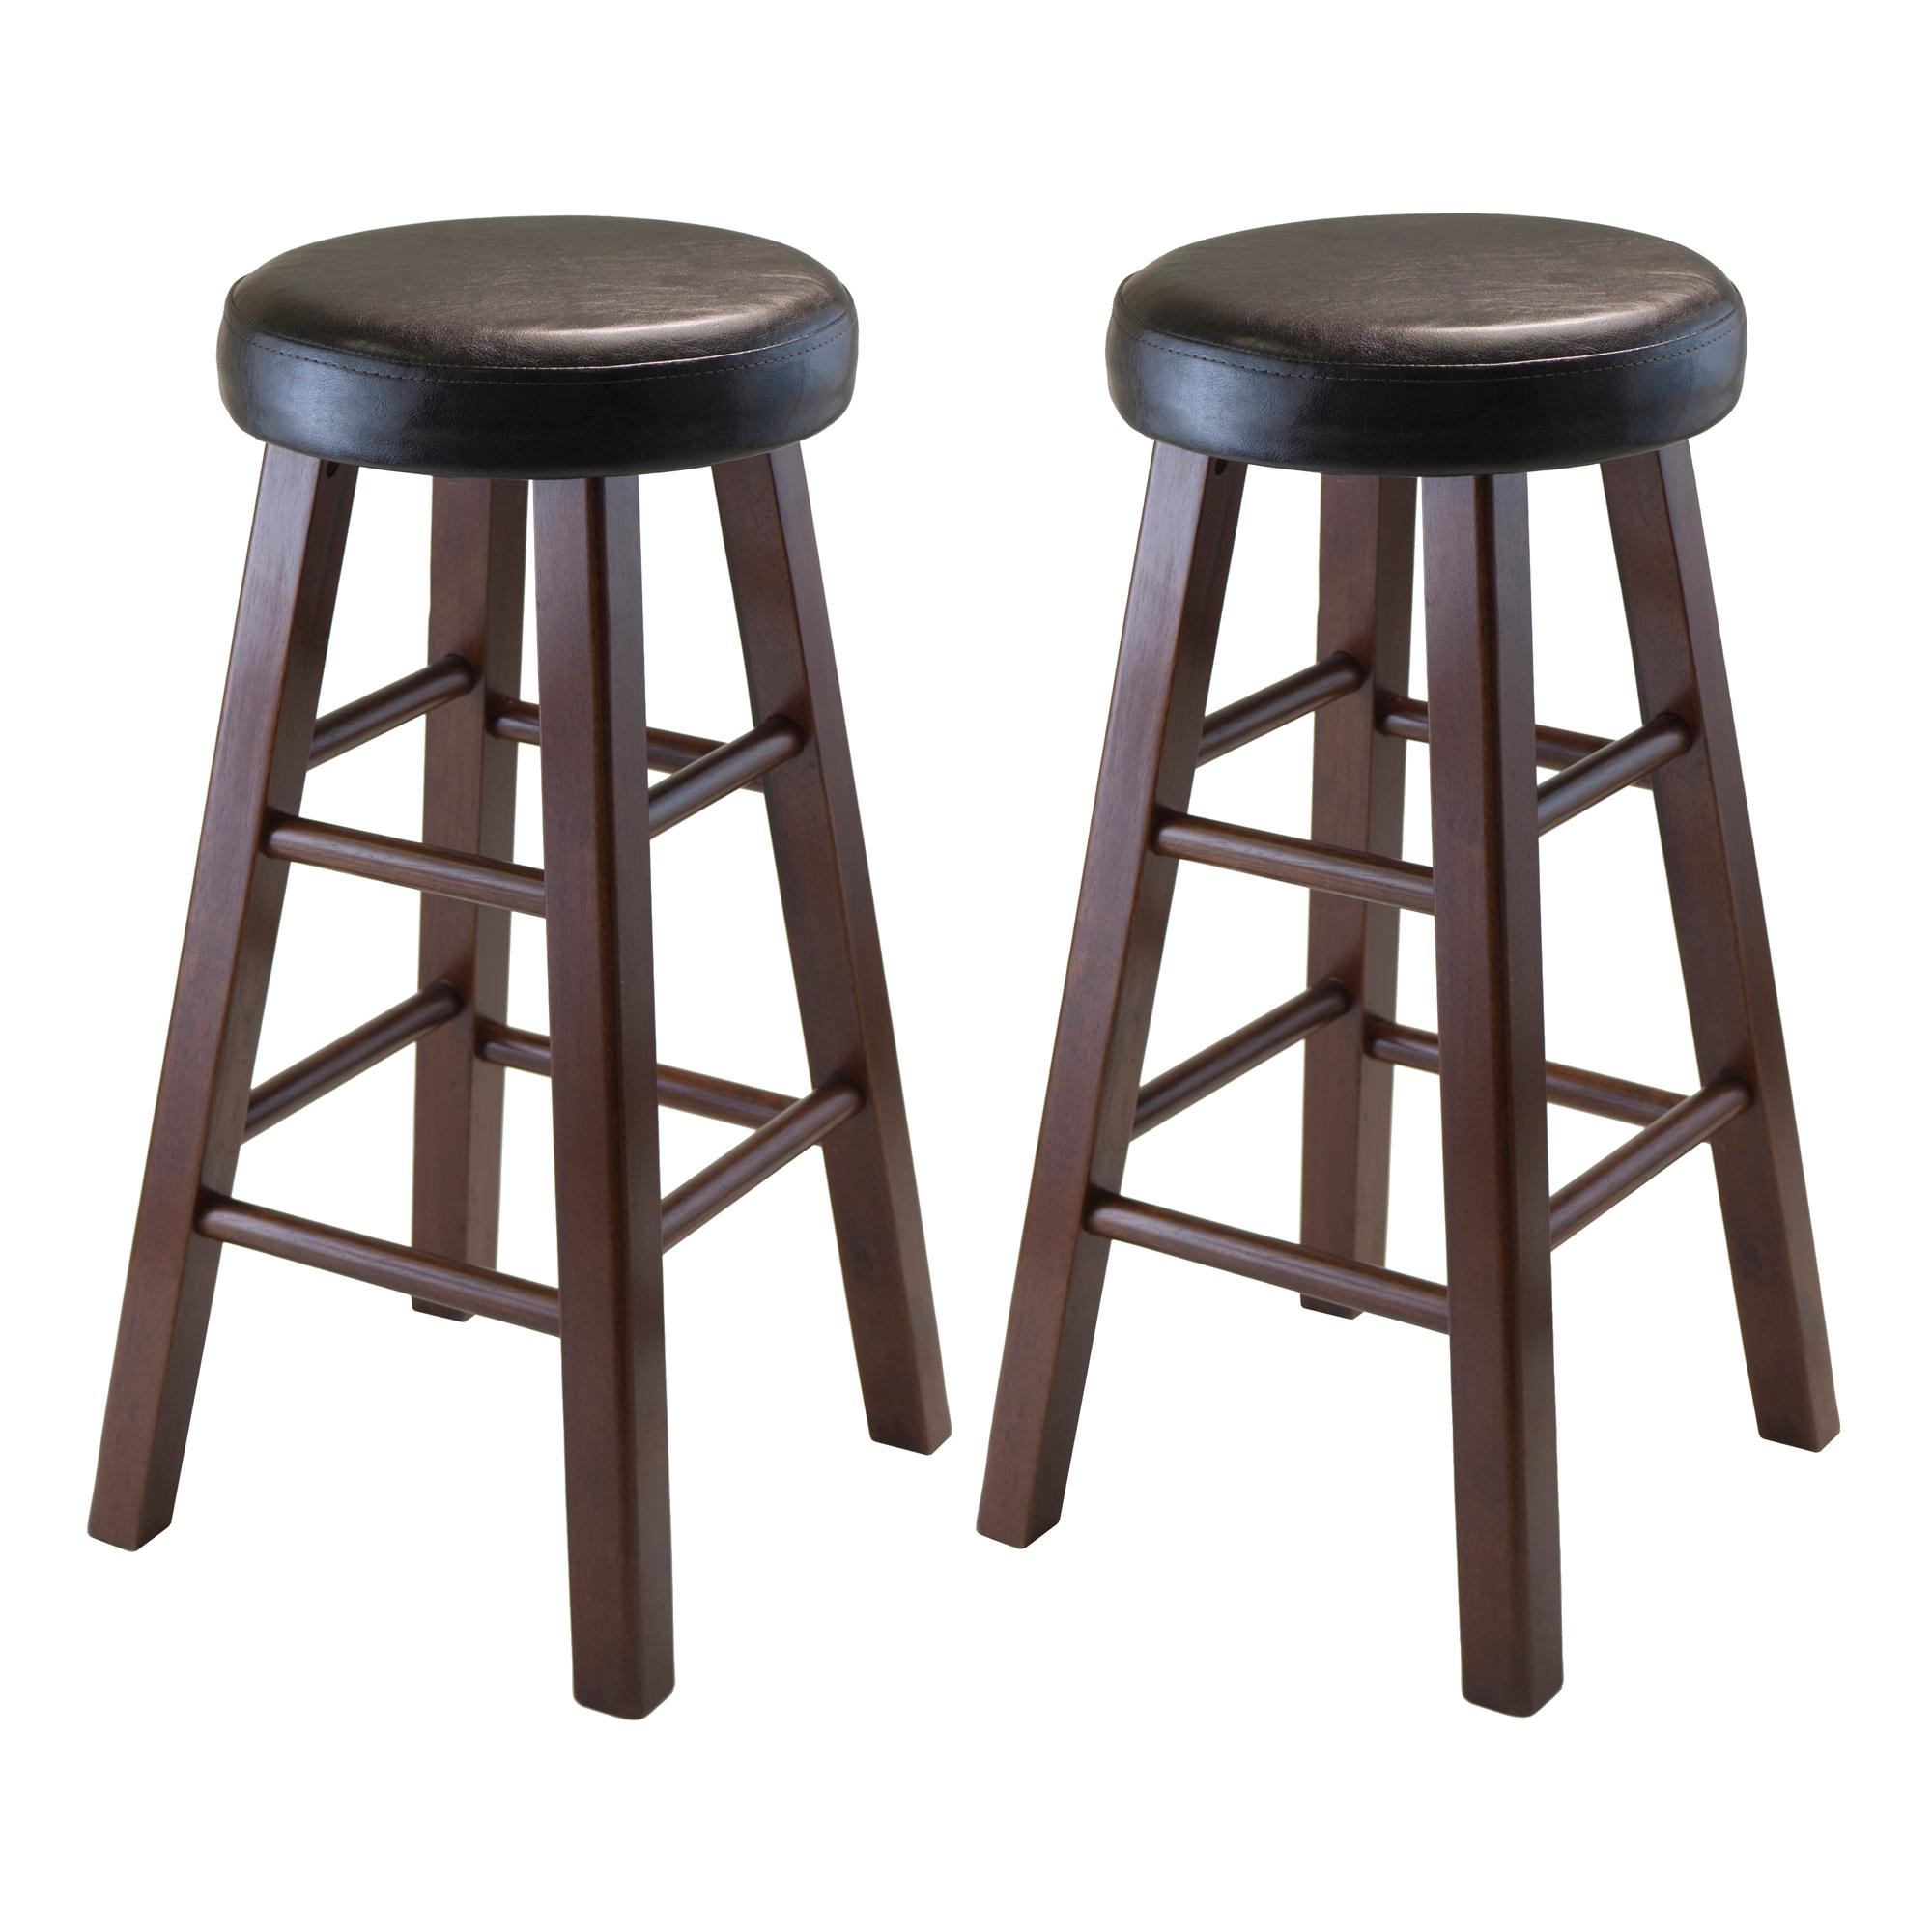 Inspirational Pvc Bar Stools Plans